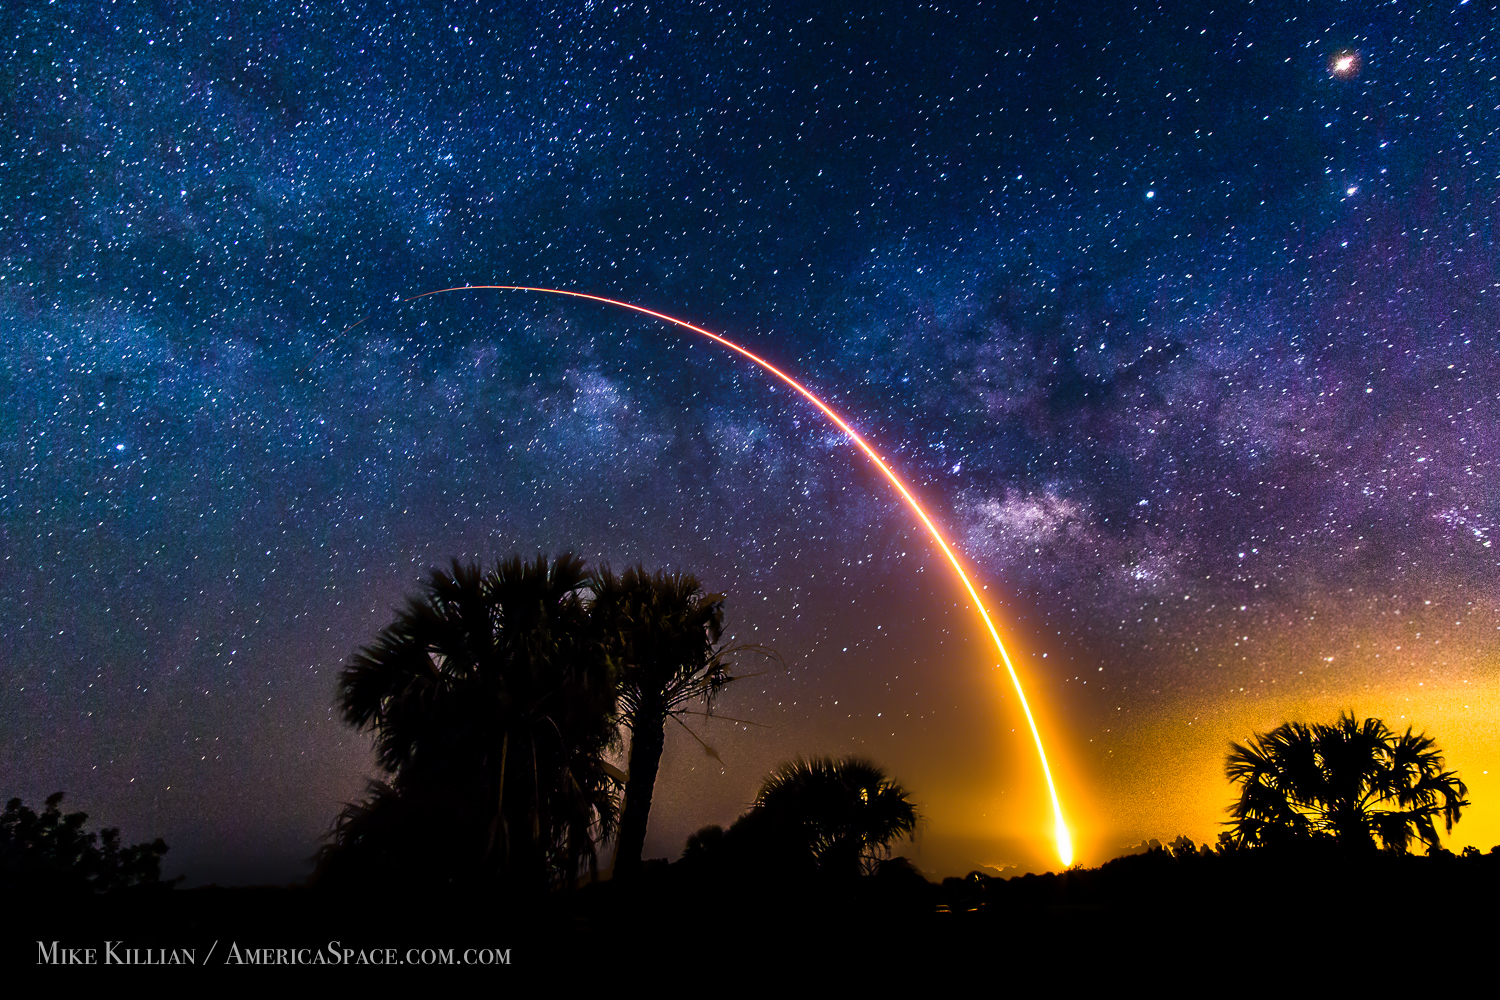 Falcon 9 Rocket Blasting Off to Milky Way